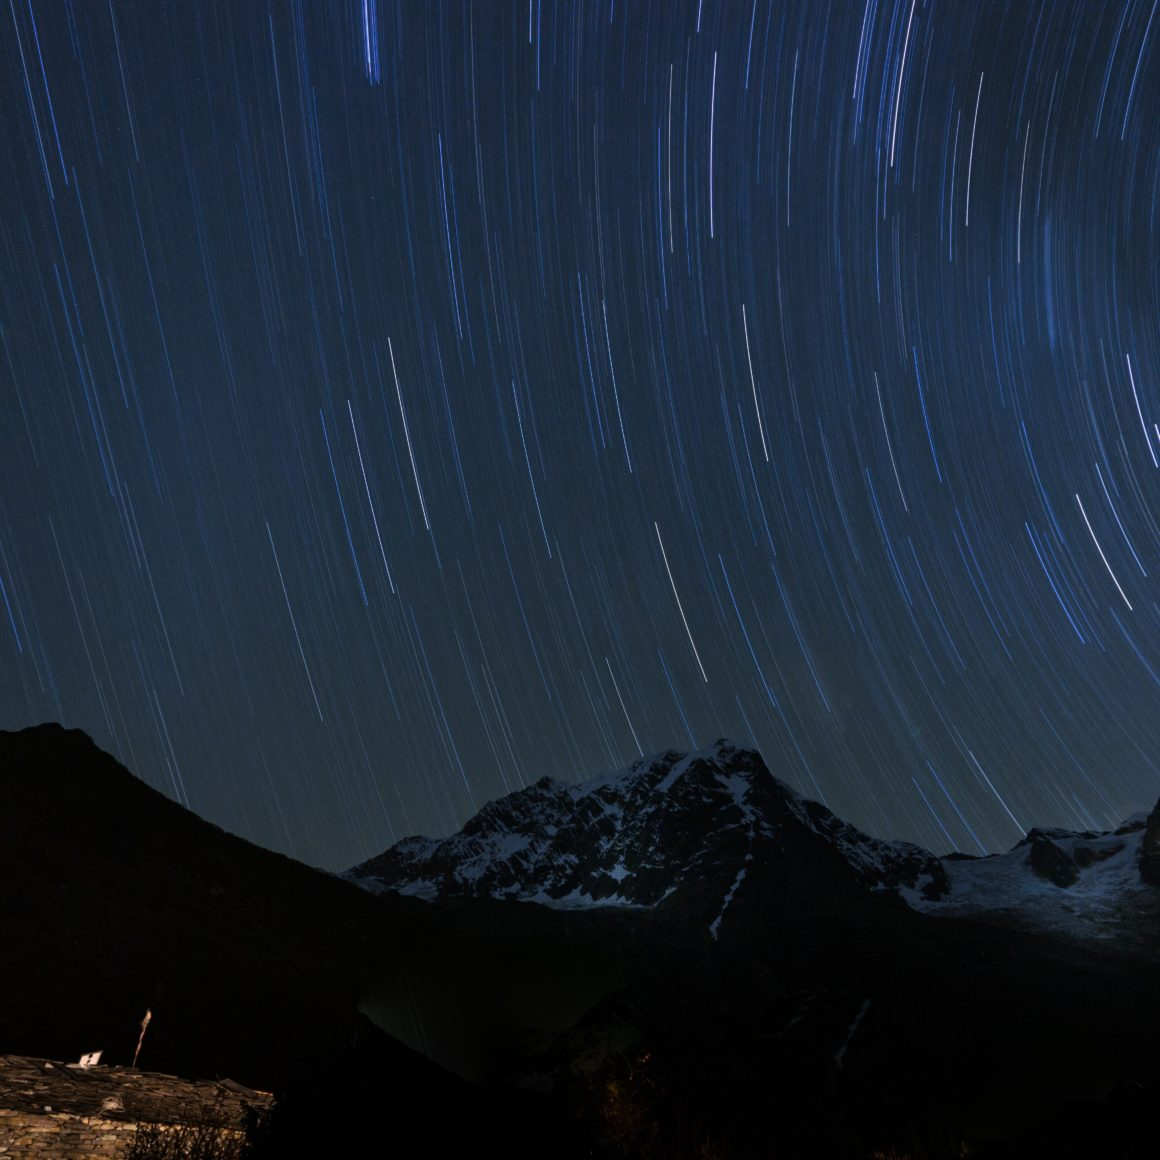 stars over mountains